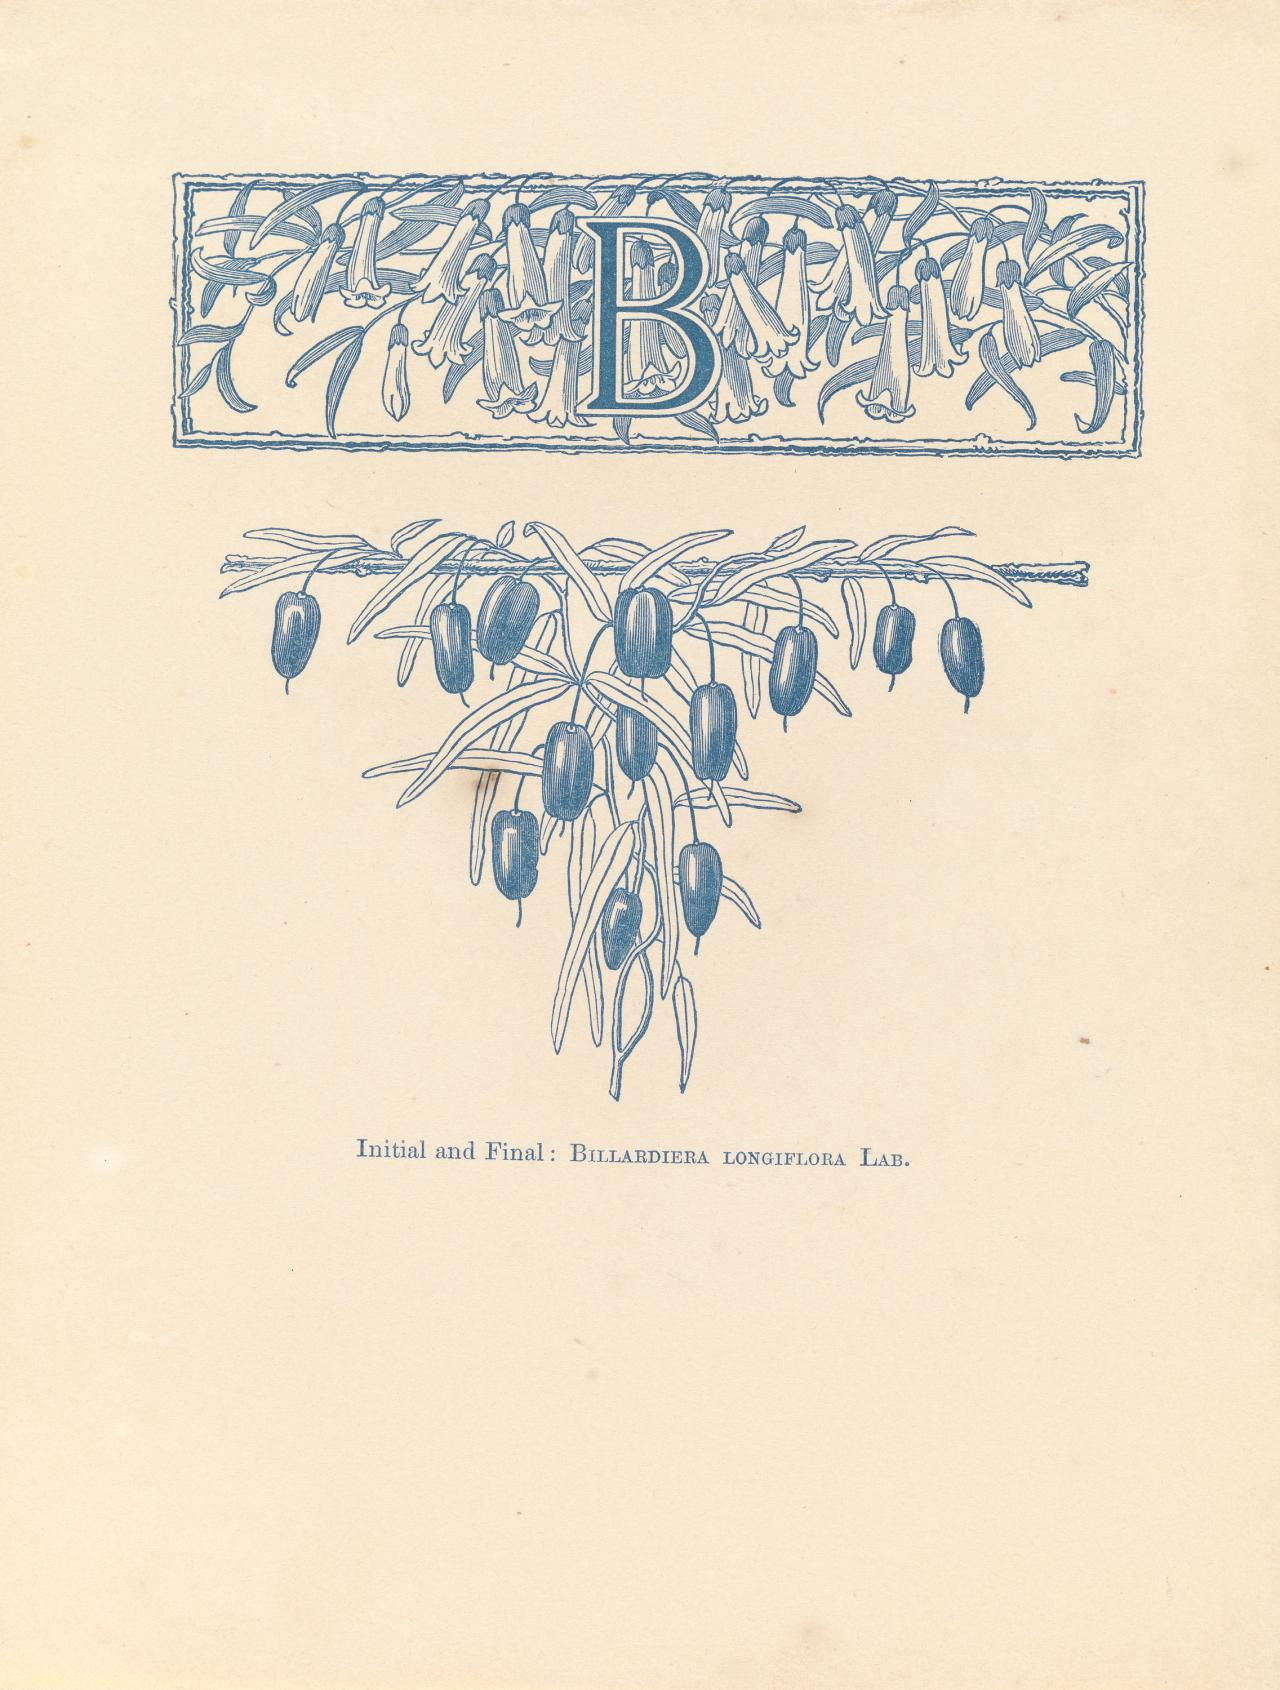 B initial and final: Billardiera longiflora